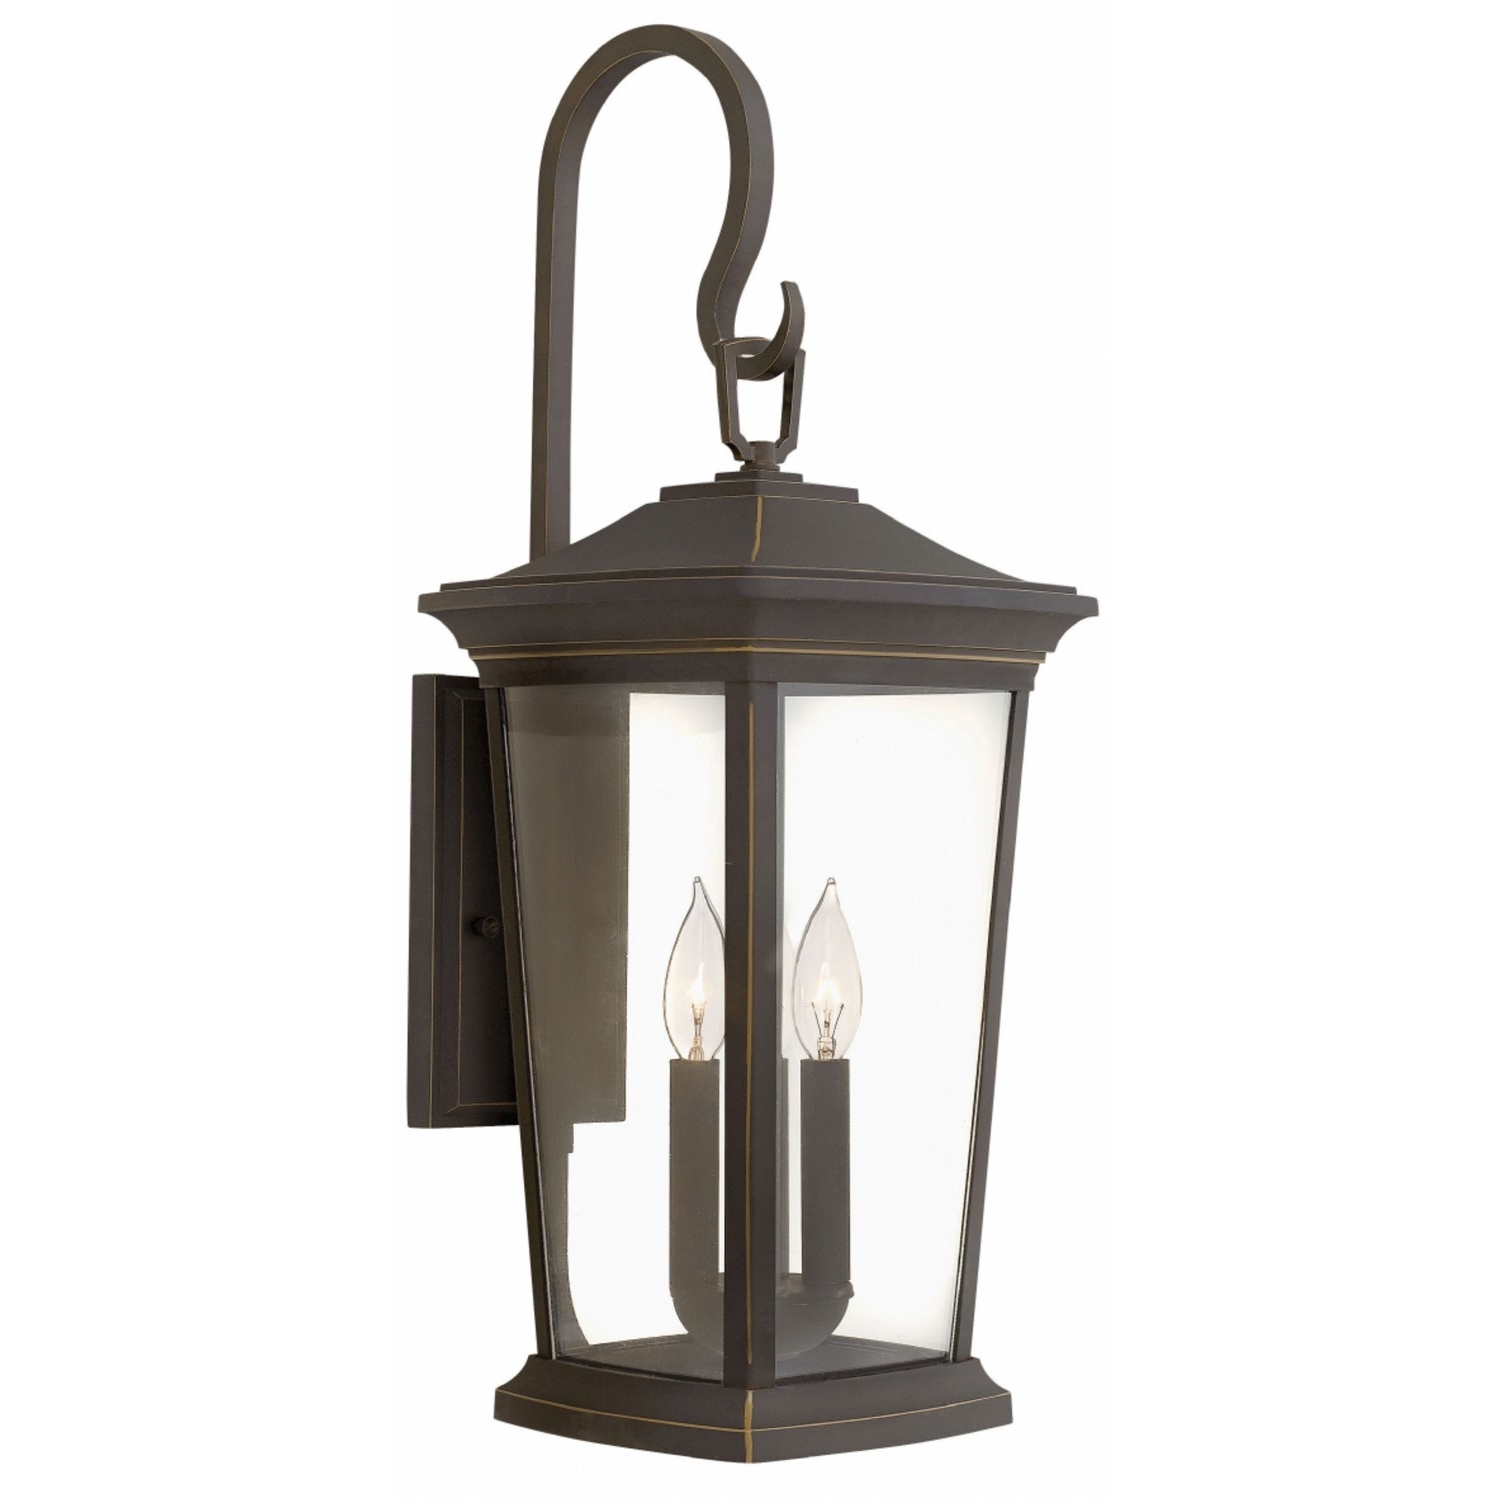 Hinkley 2366Oz Bromley 3 Light Outdoor Medium Wall Mount In Oil Throughout Latest Modern Latern Hinkley Lighting (View 20 of 20)